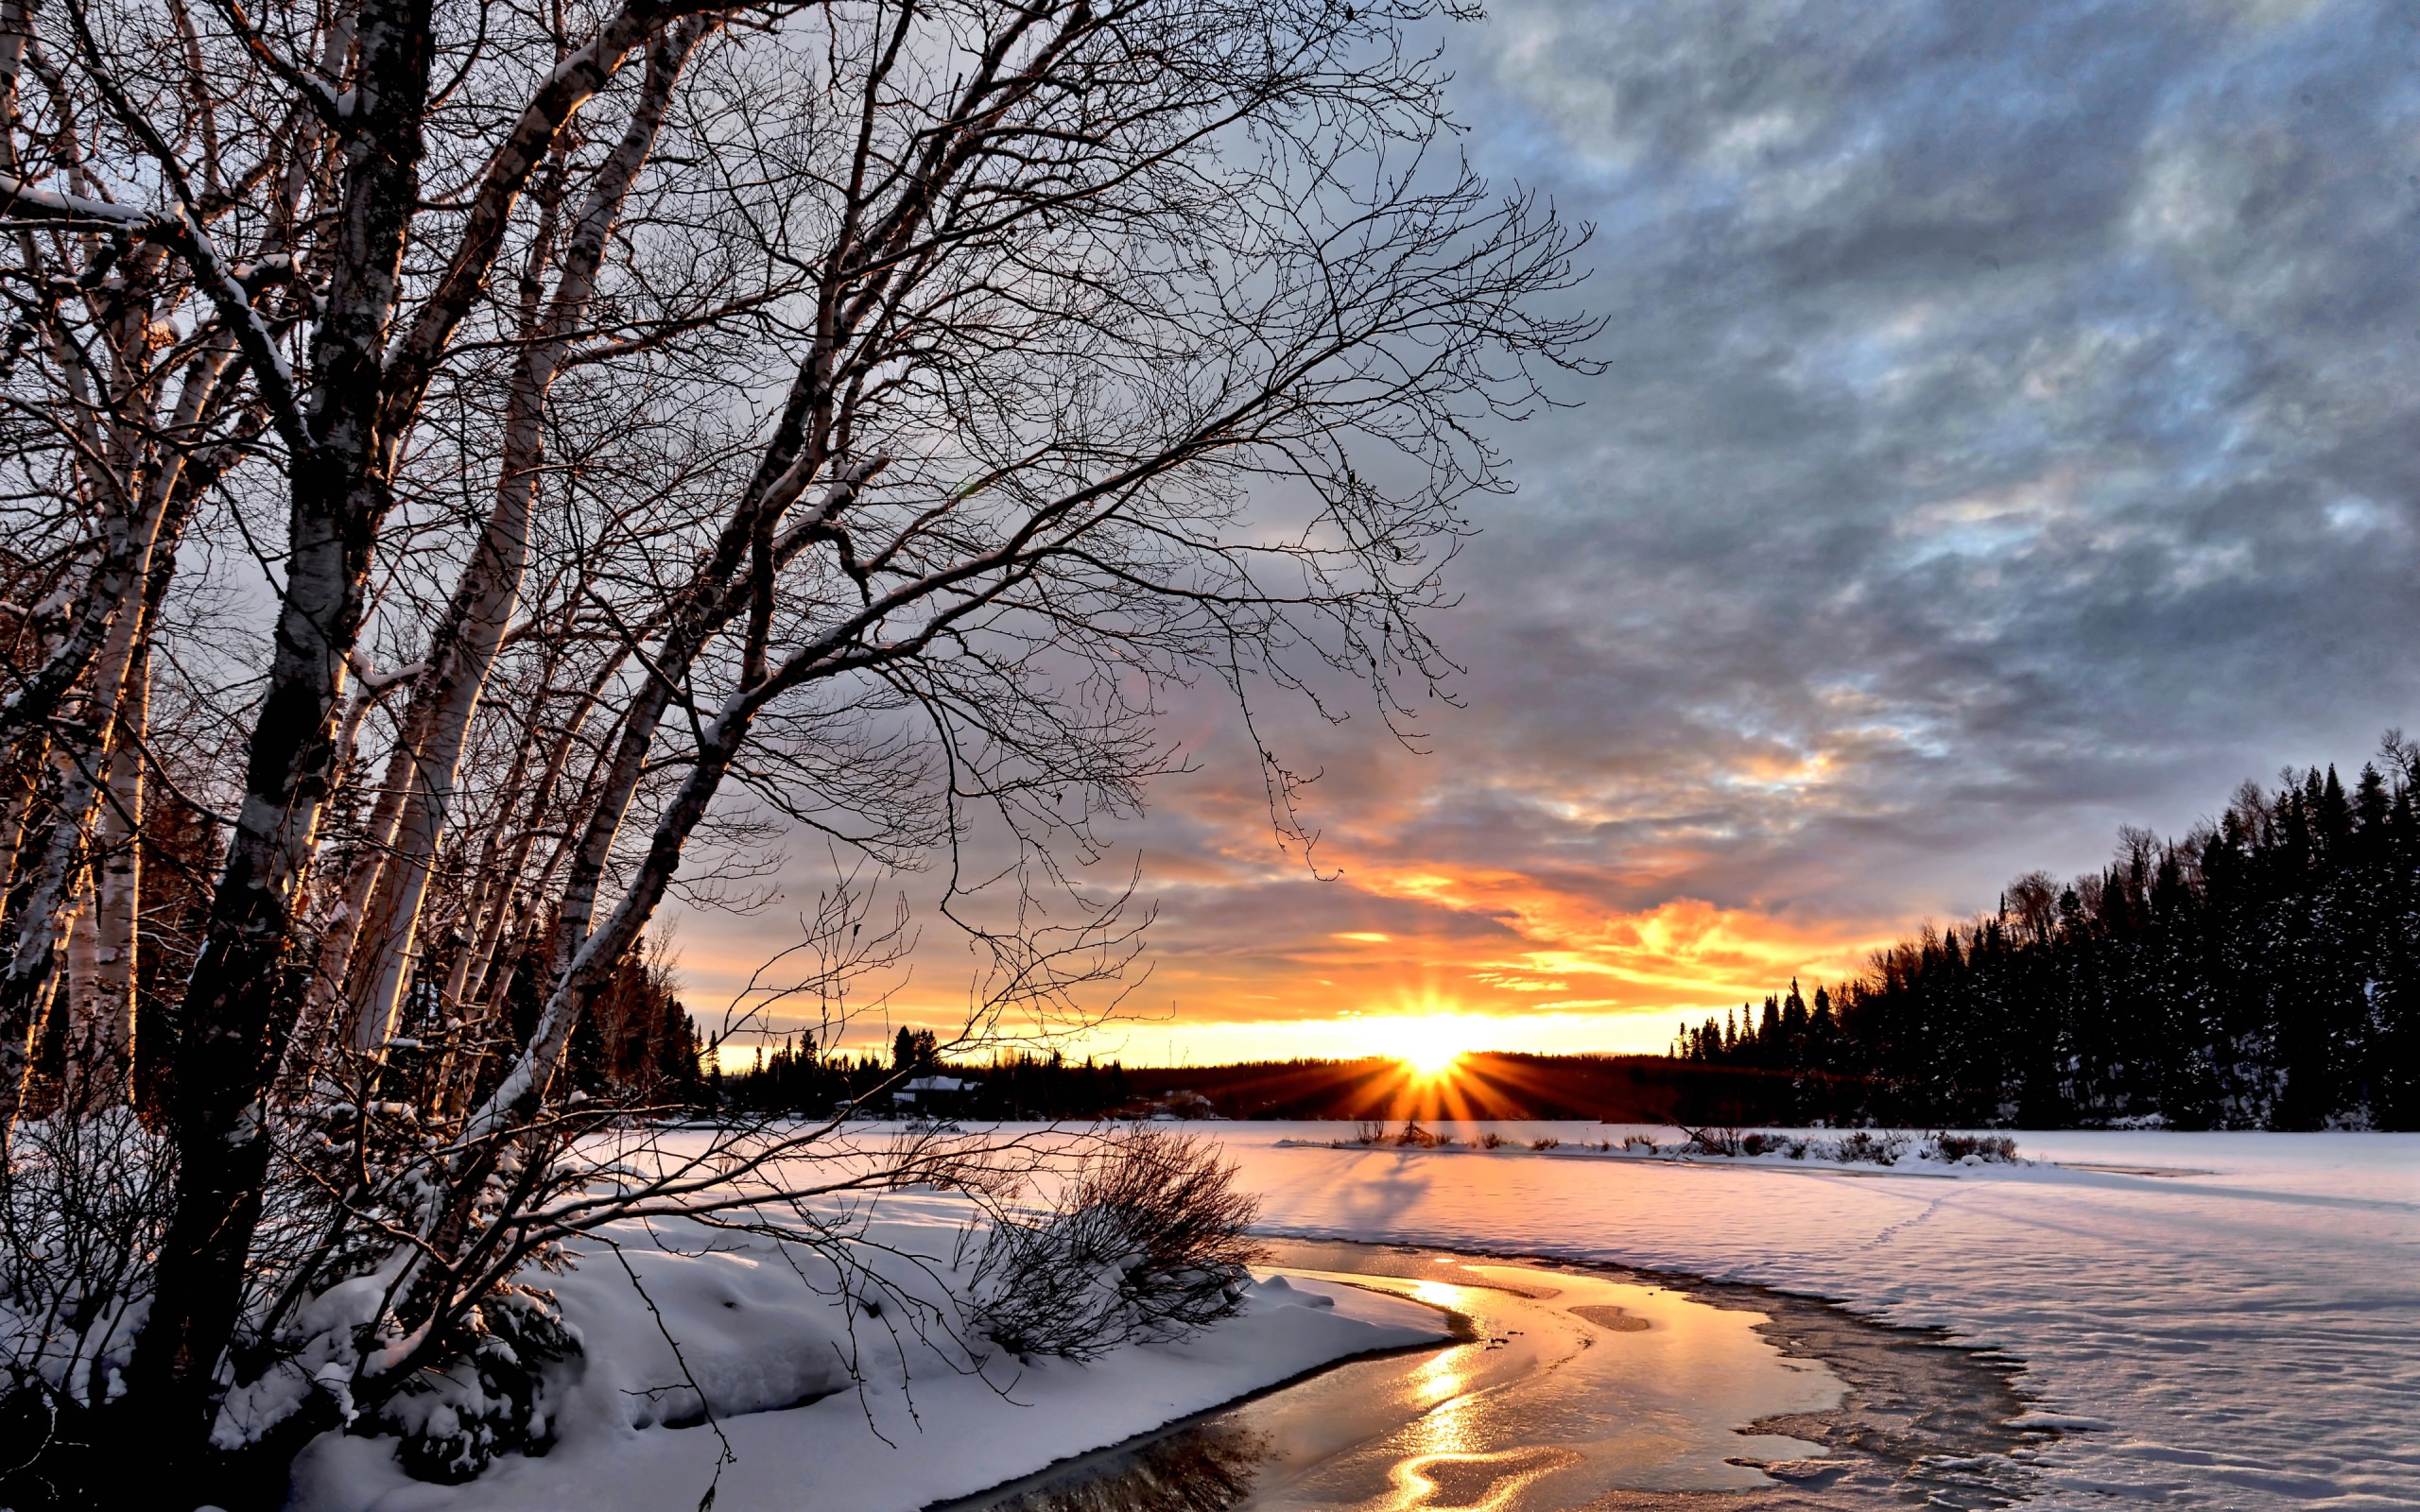 Sunset over the Winter landscape wallpaper 2560x1600